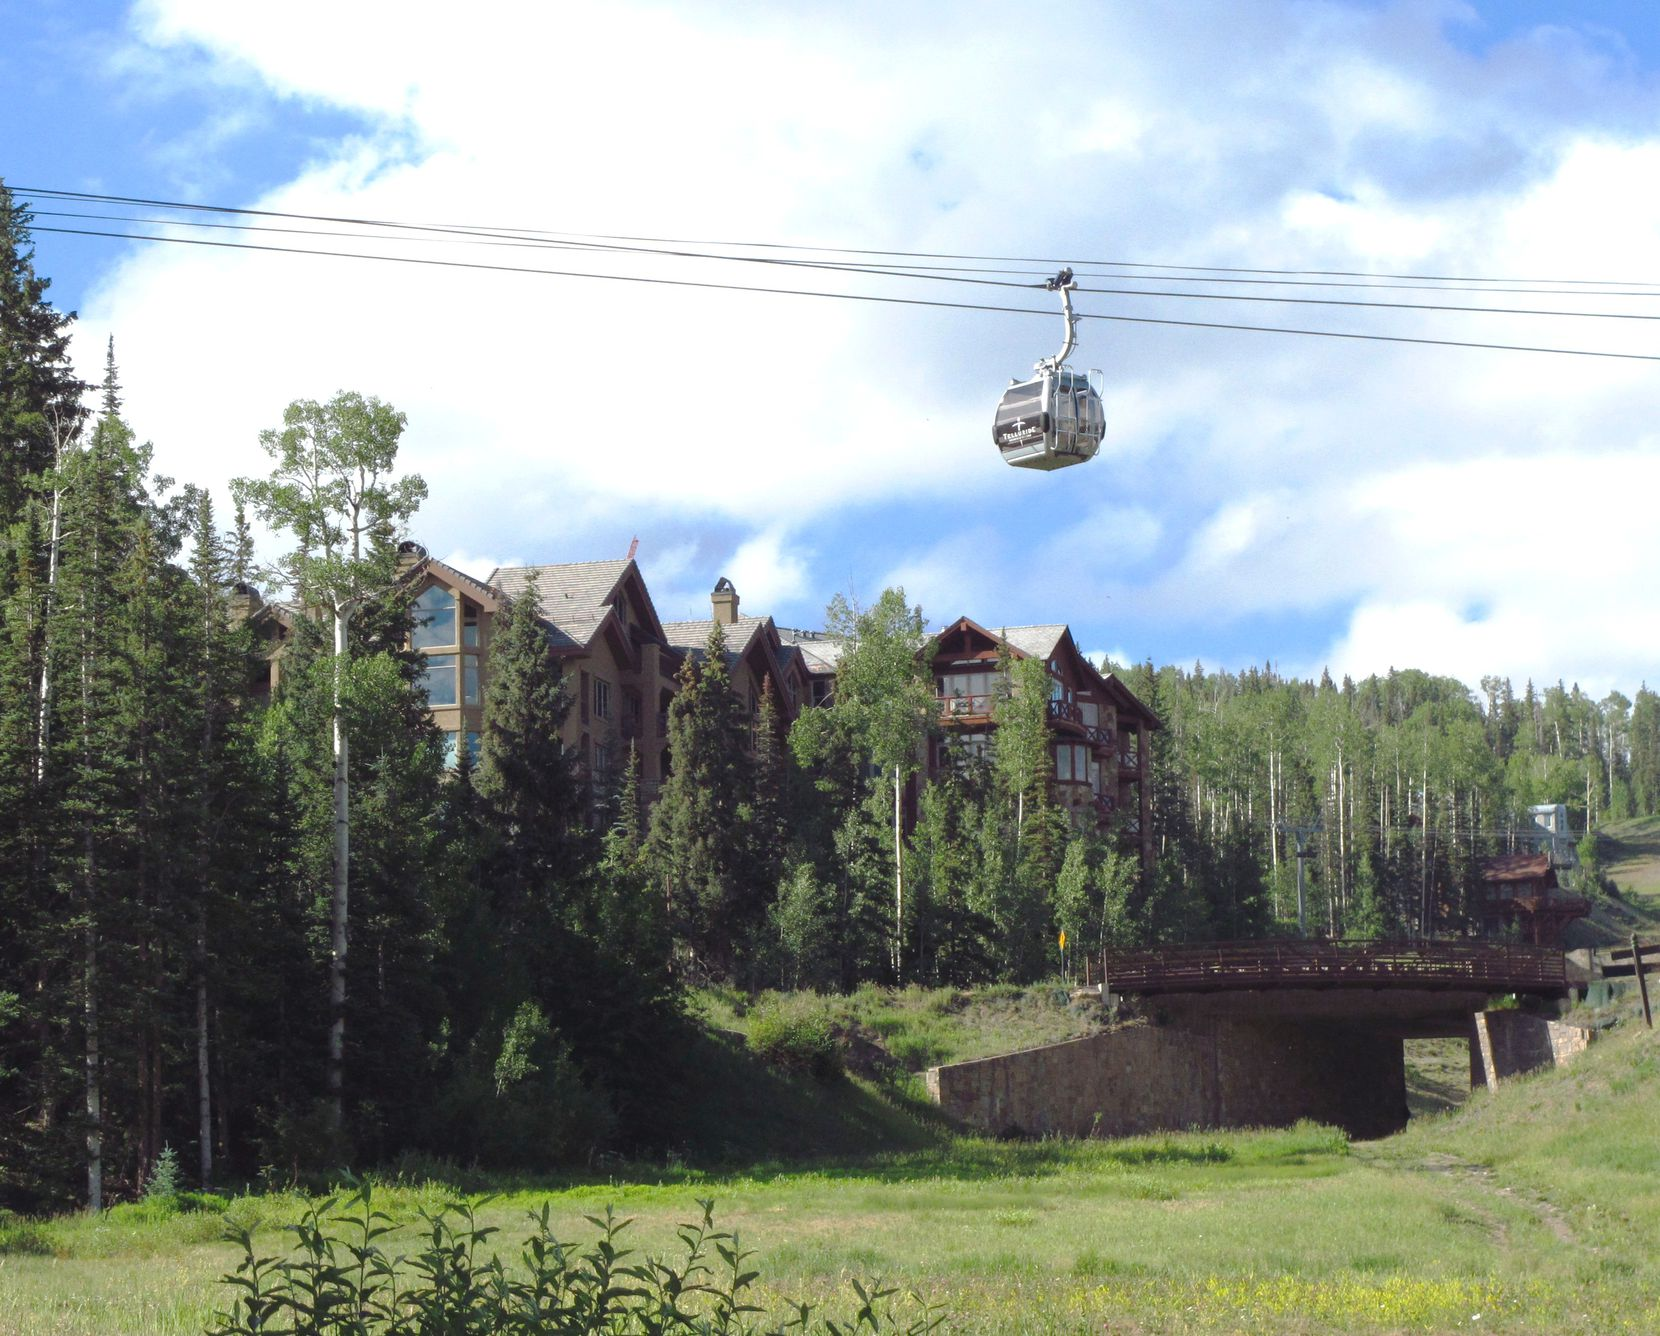 An innovative gondola system provides continuous free transportation between Telluride and Mountain Village.